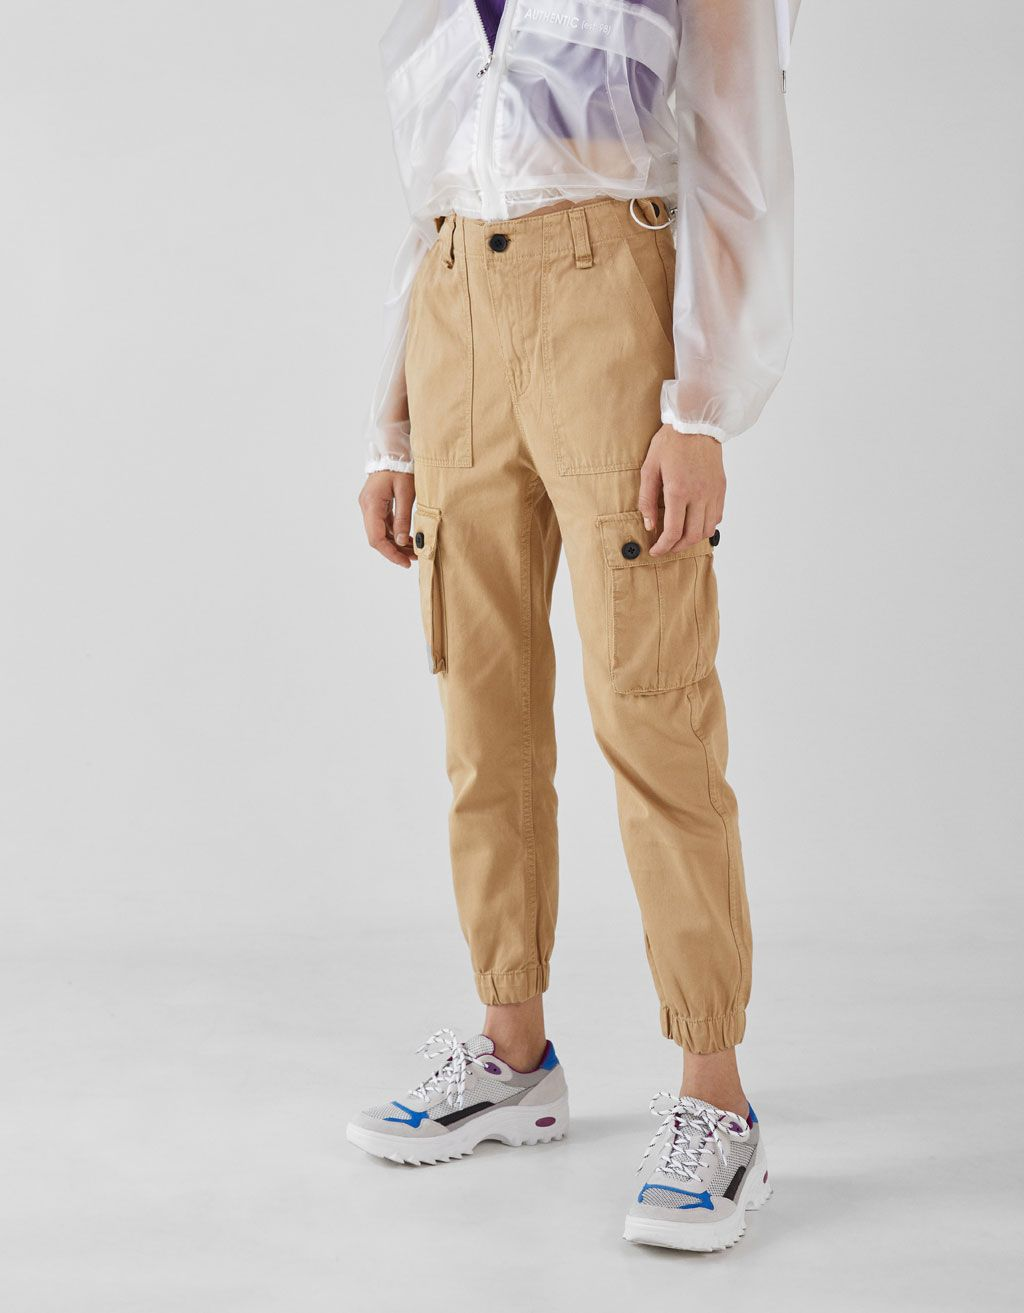 c9ae4409a3e44 Bershka Cargo pants. Discover this and many more items in Bershka with new  products every